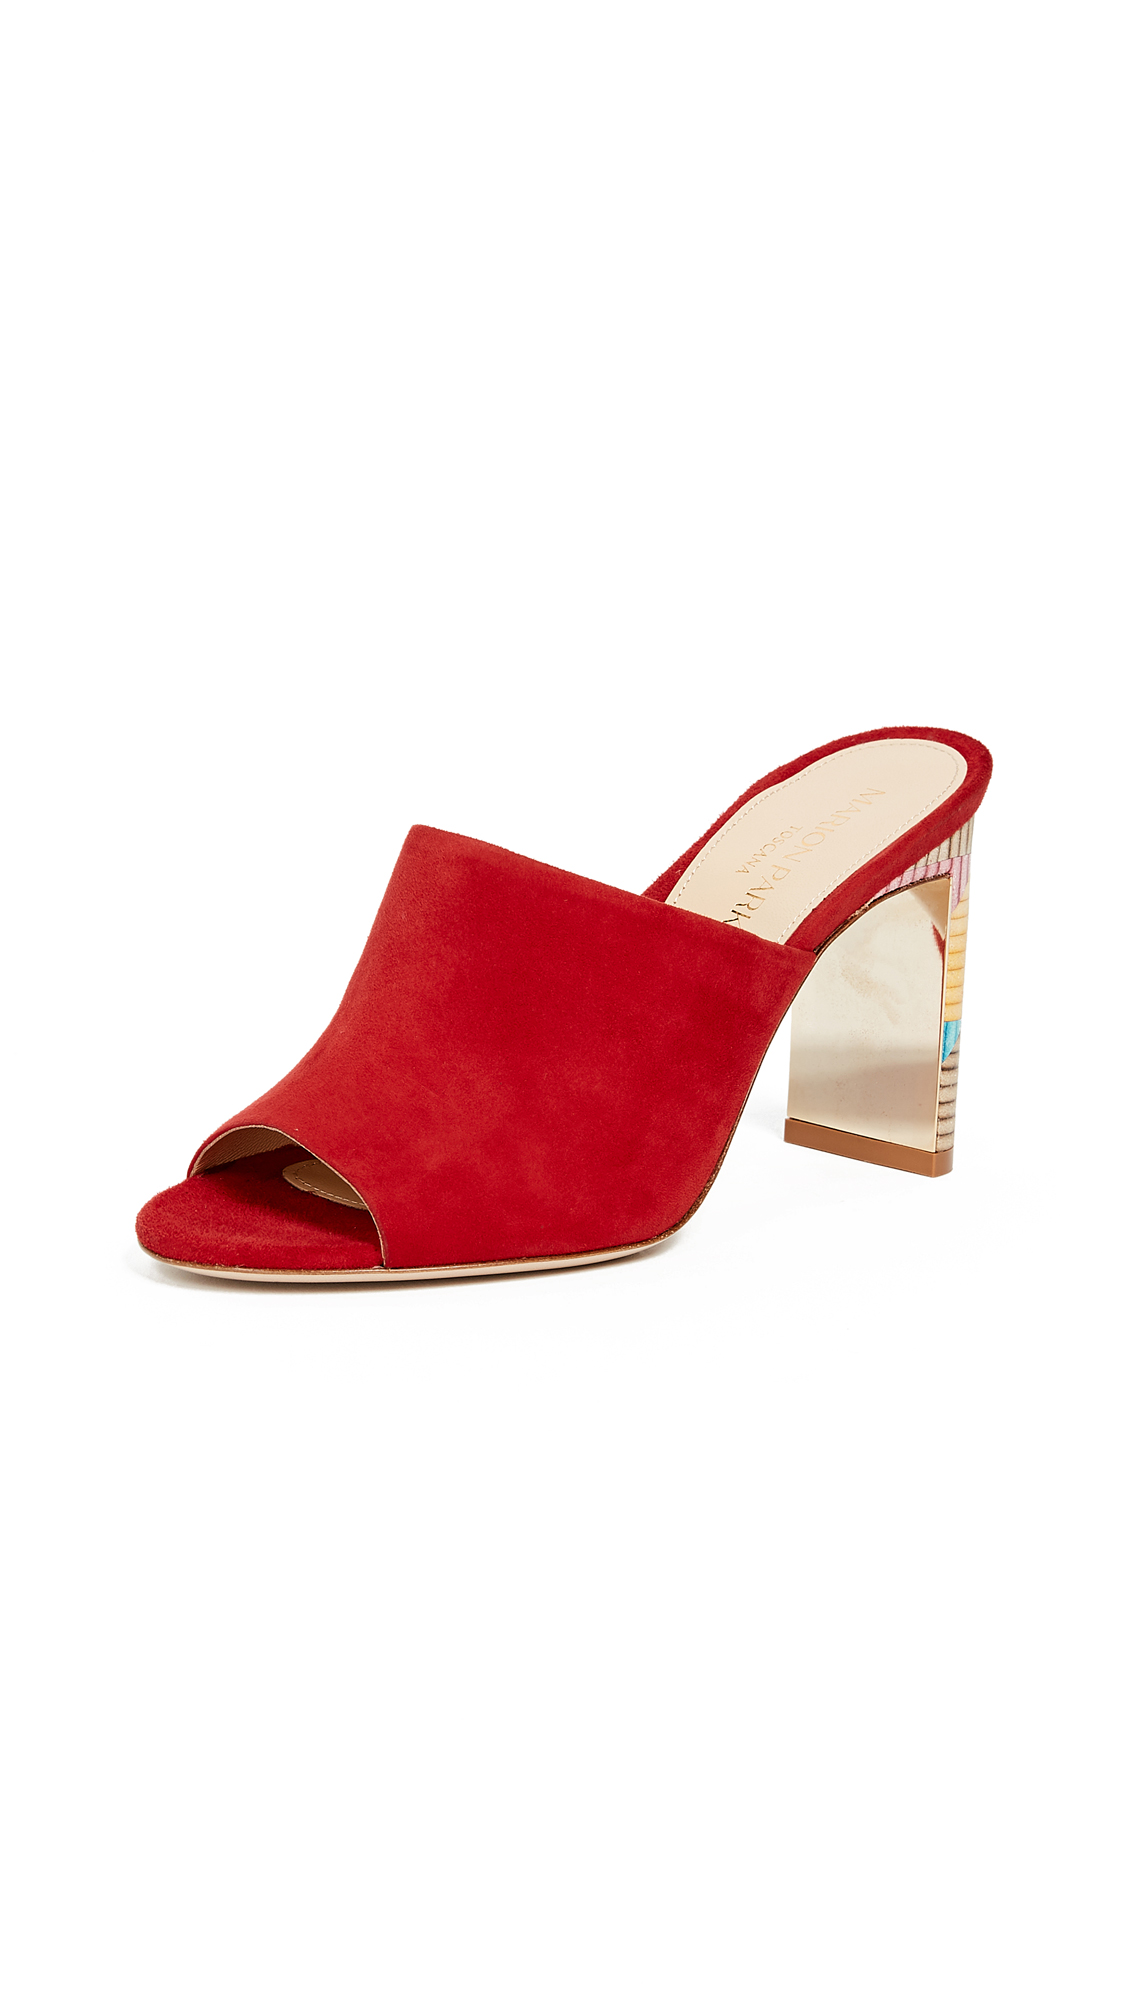 Marion Parke Louisa Mules - Classic Red